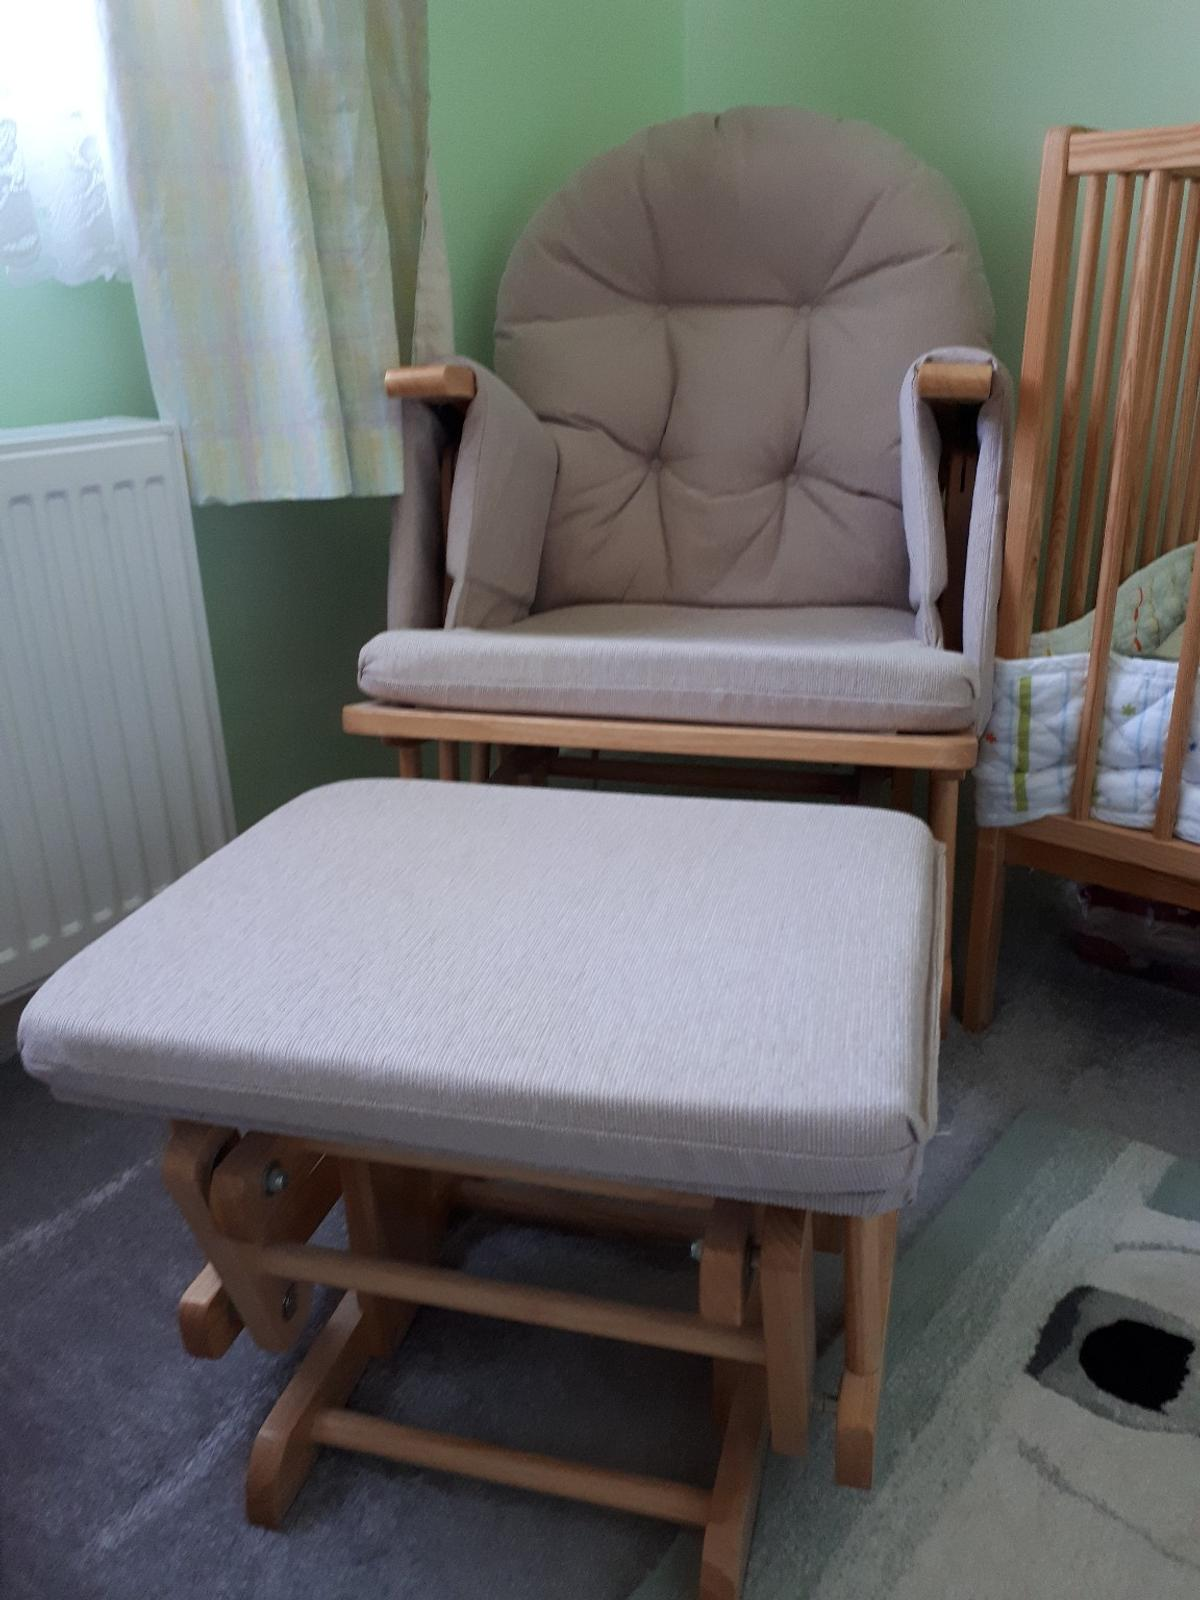 Miraculous Reclining Glider Nursing Chair And Footstool Pabps2019 Chair Design Images Pabps2019Com